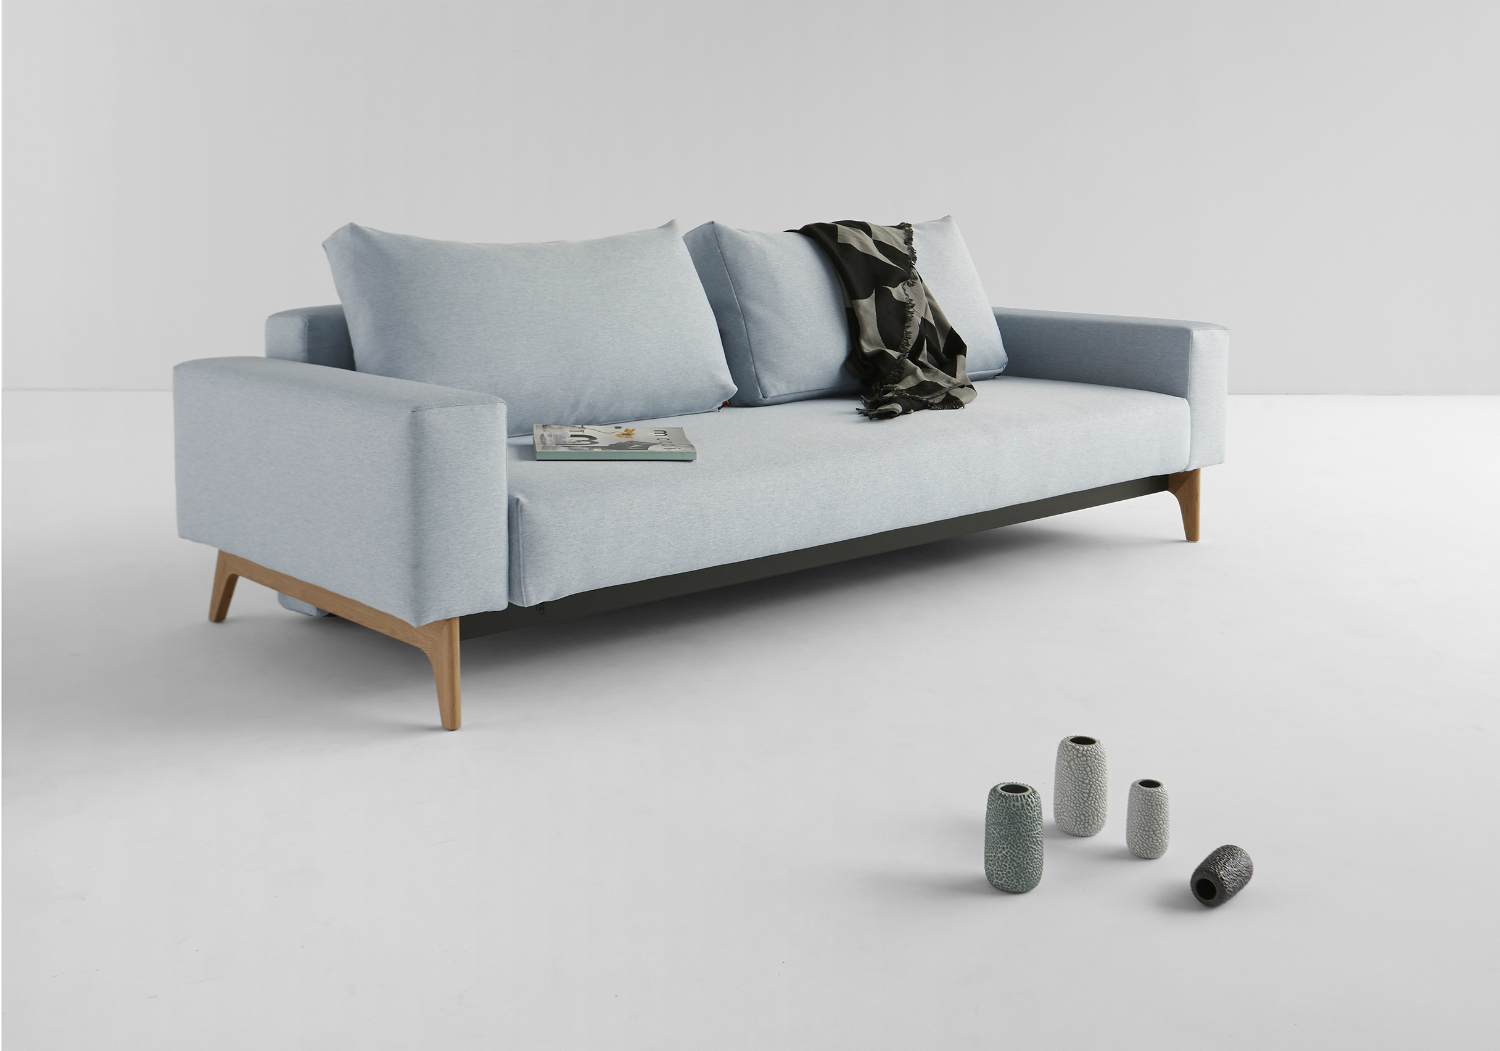 Idun sofa bed innovation living australia for Sofa bed australia